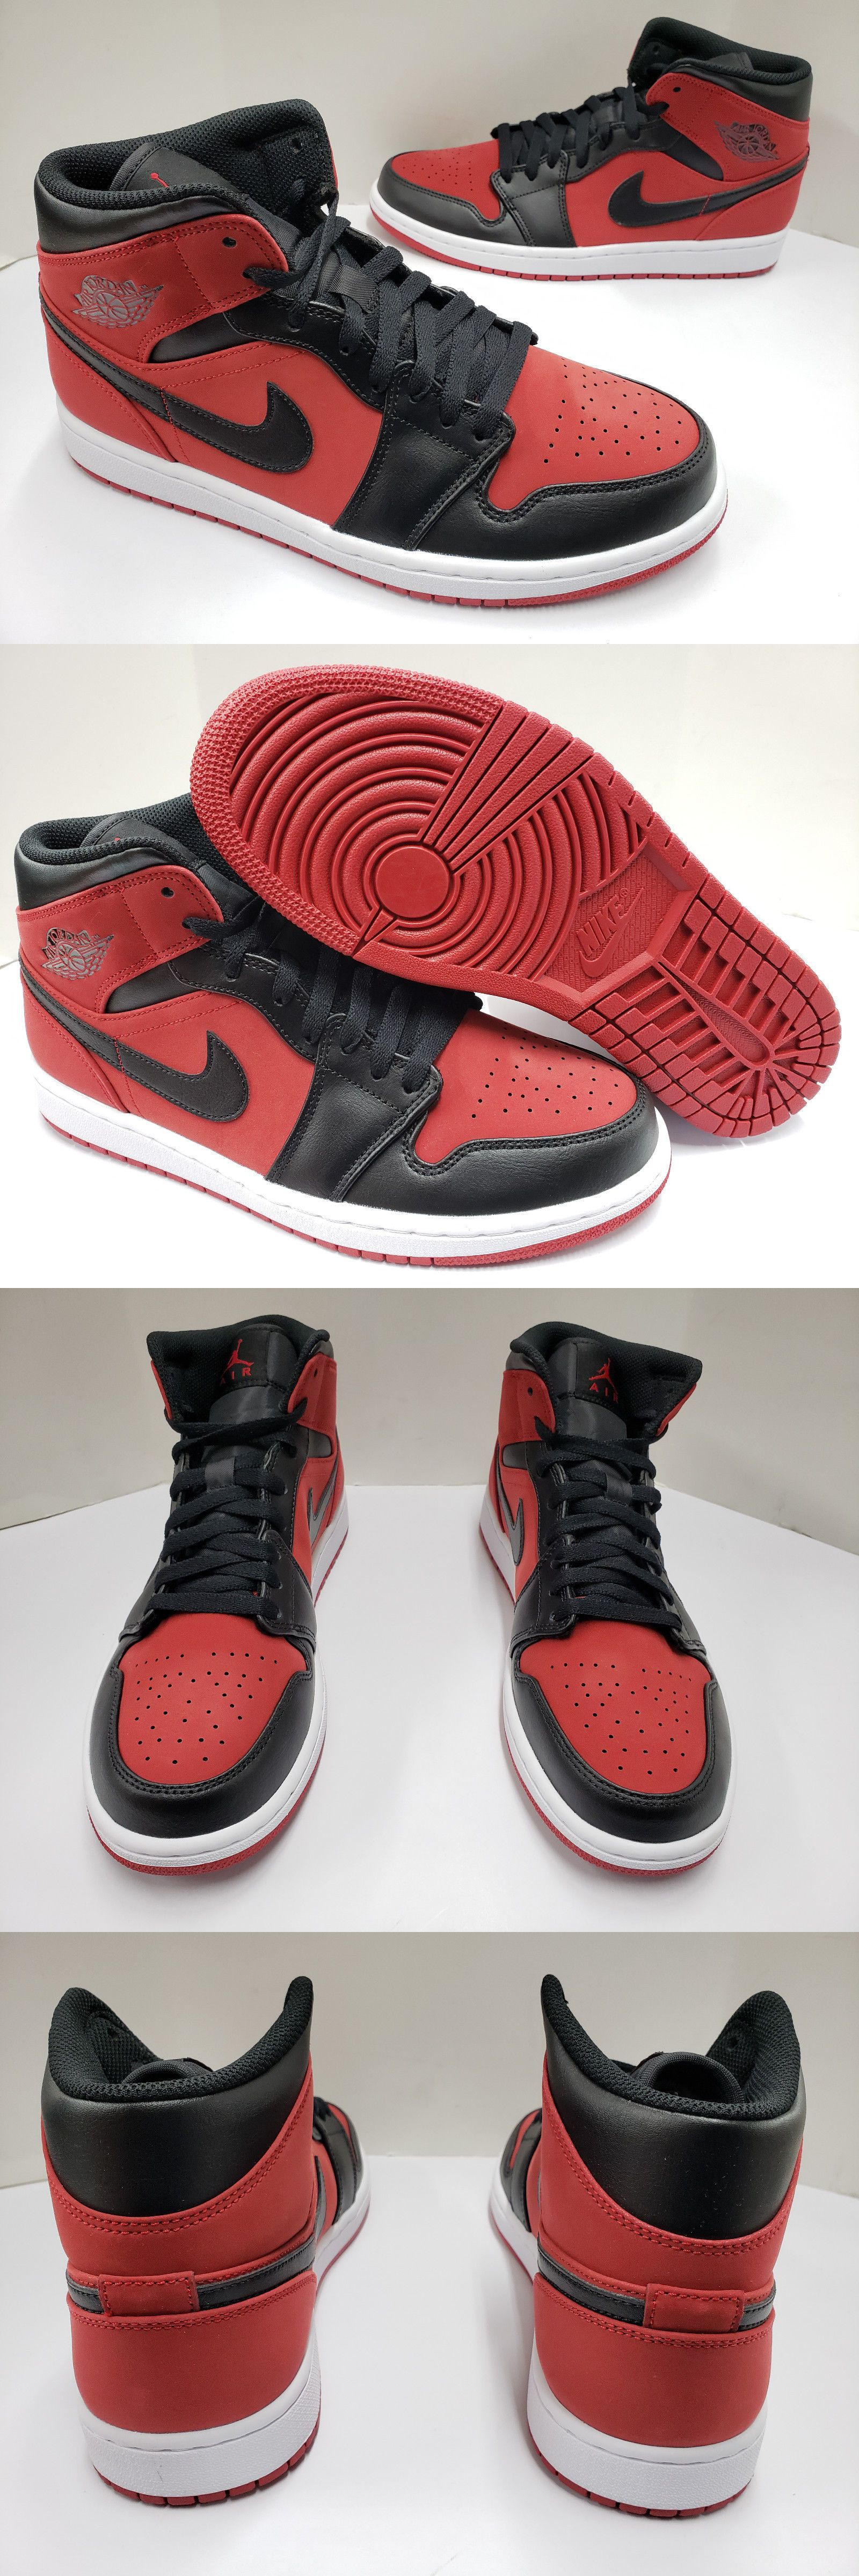 new product 18e37 206f0 Clothing Shoes and Accessories 158963  Nib Mens Nike Air Jordan 1 Mid  Banned Gym Red